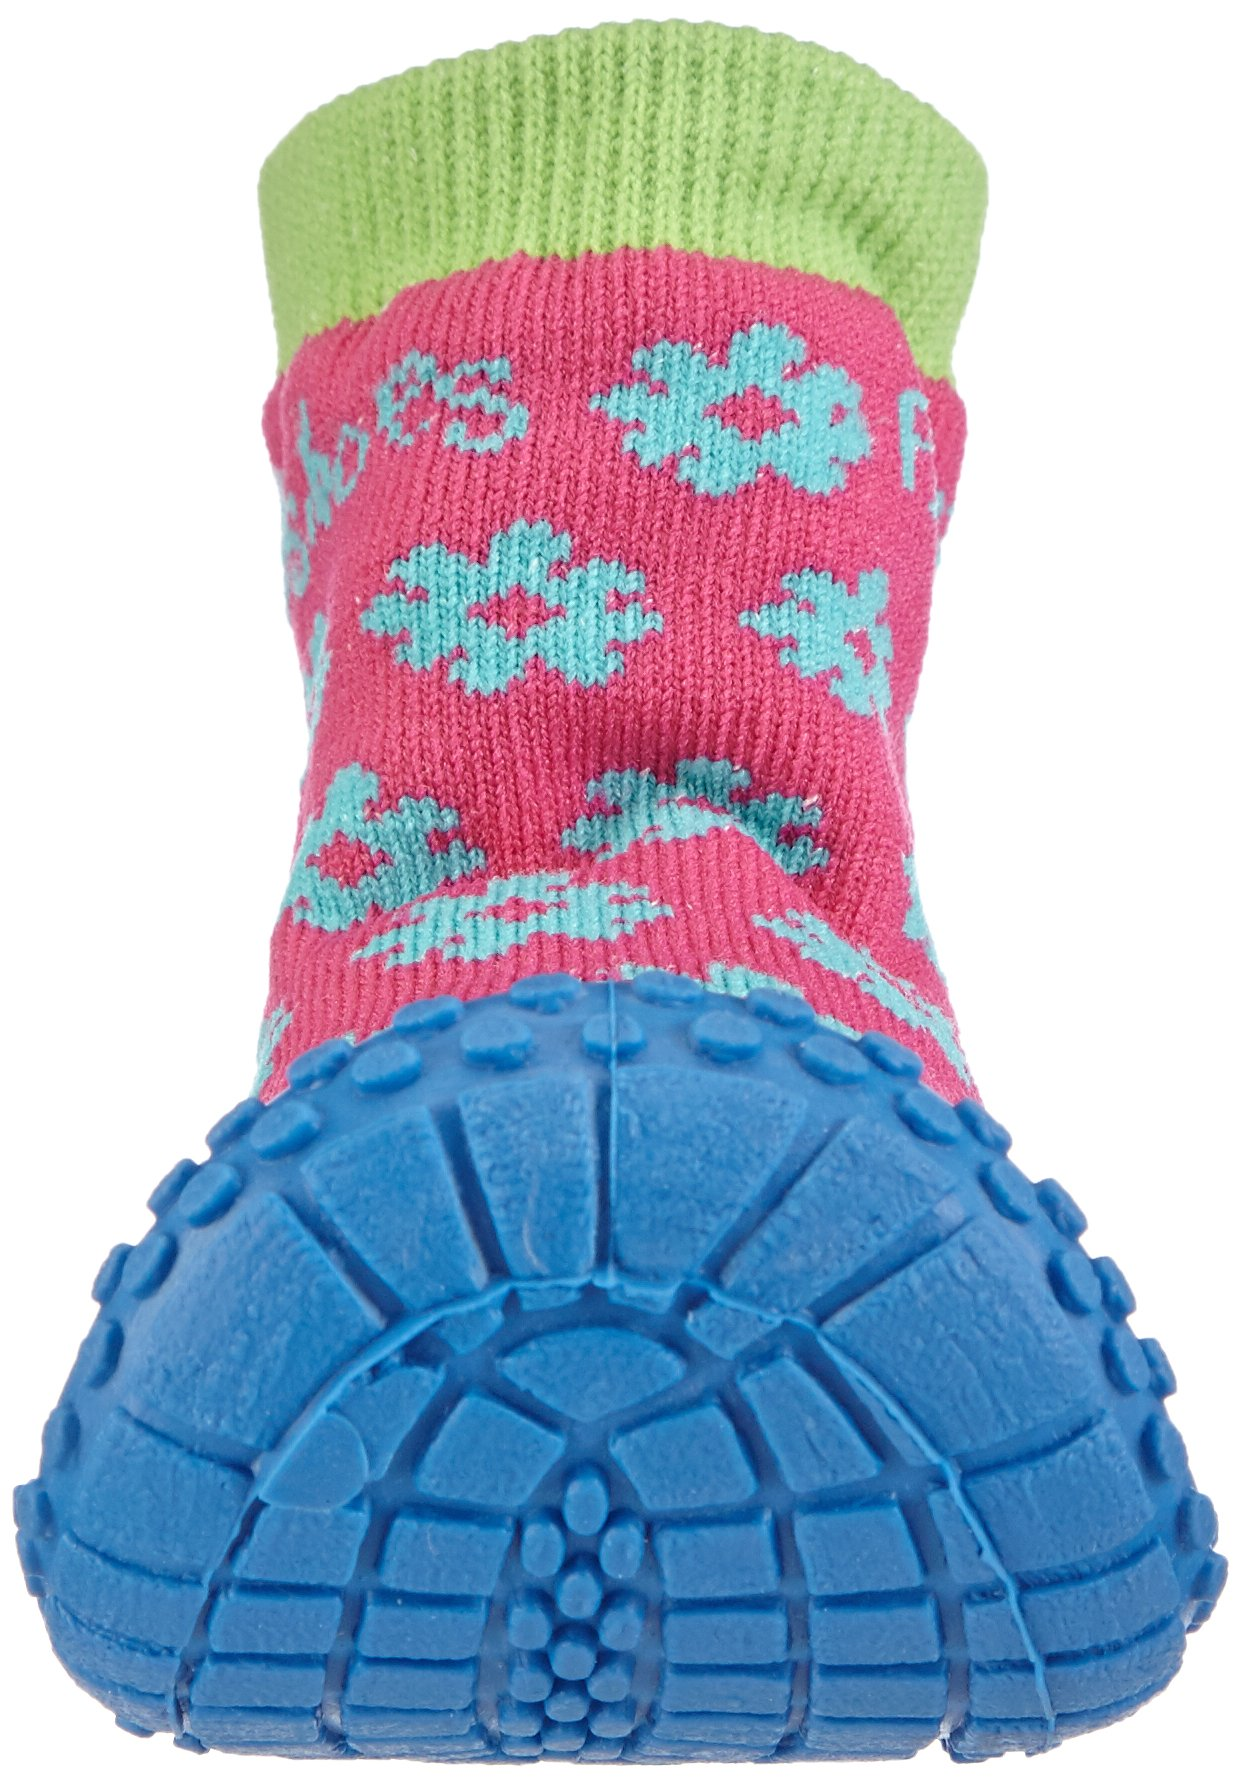 Playshoes Girls Flower Collection Rubber Aqua Swim/Beach Shoes (4.5 M US Toddler) by Playshoes (Image #4)